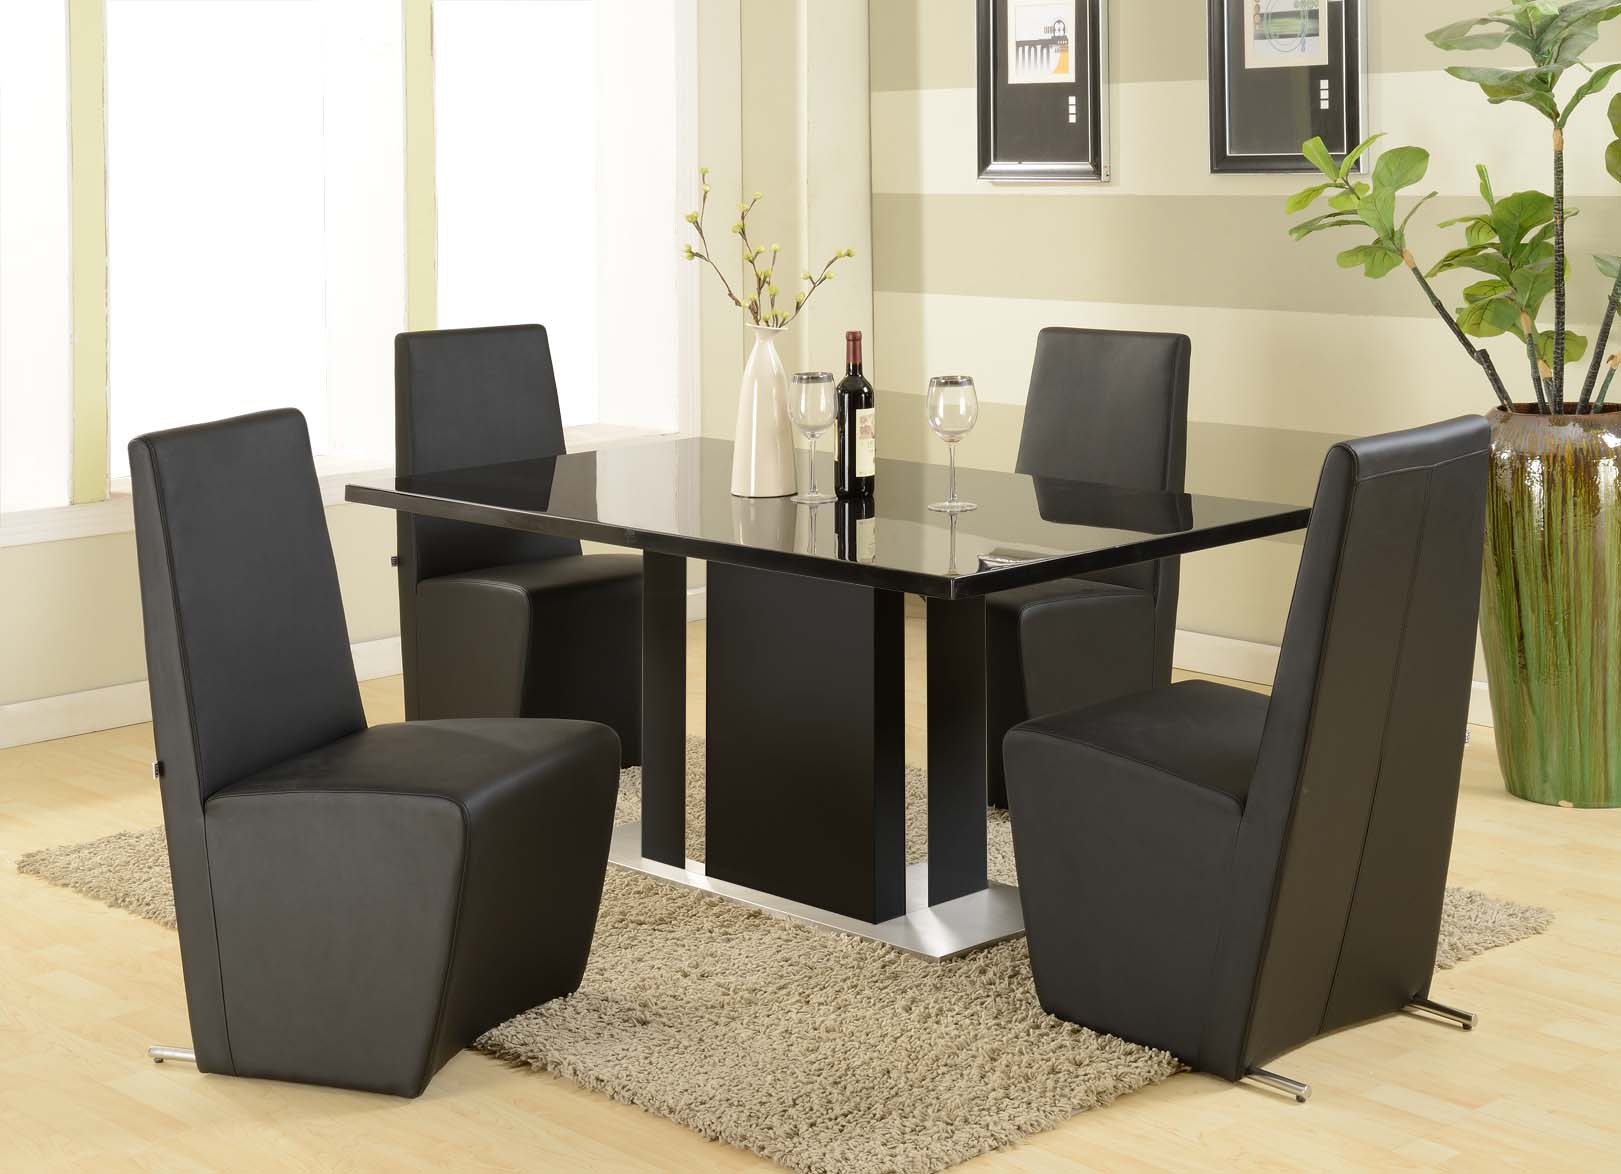 Modern furniture table home design roosa for White dining room table and chairs